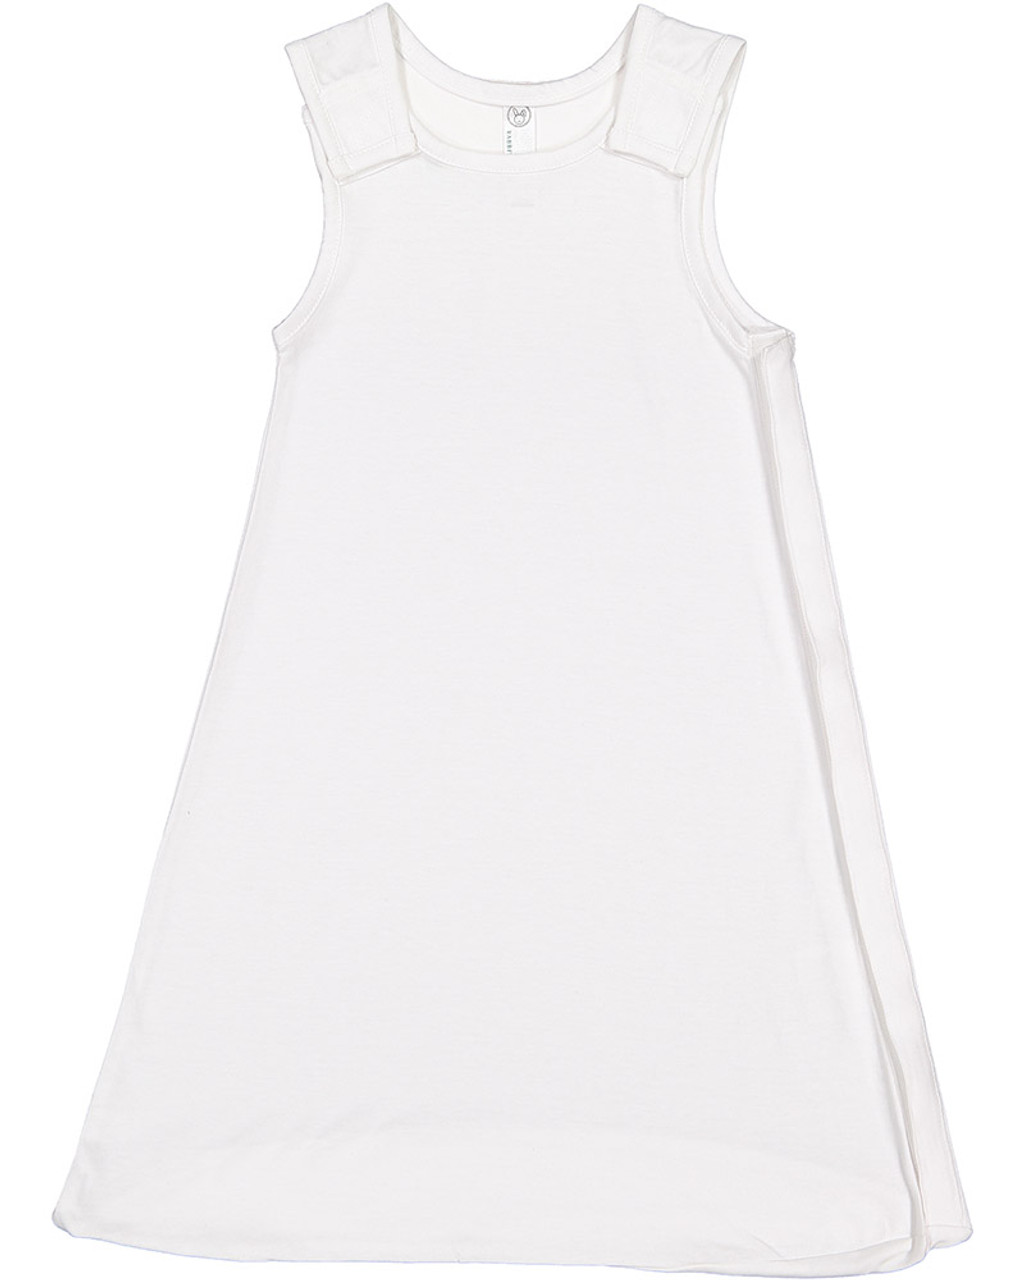 White - 4408 Rabbit Skins Infant Premium Jersey Wearable Blanket | Blankclothing.ca